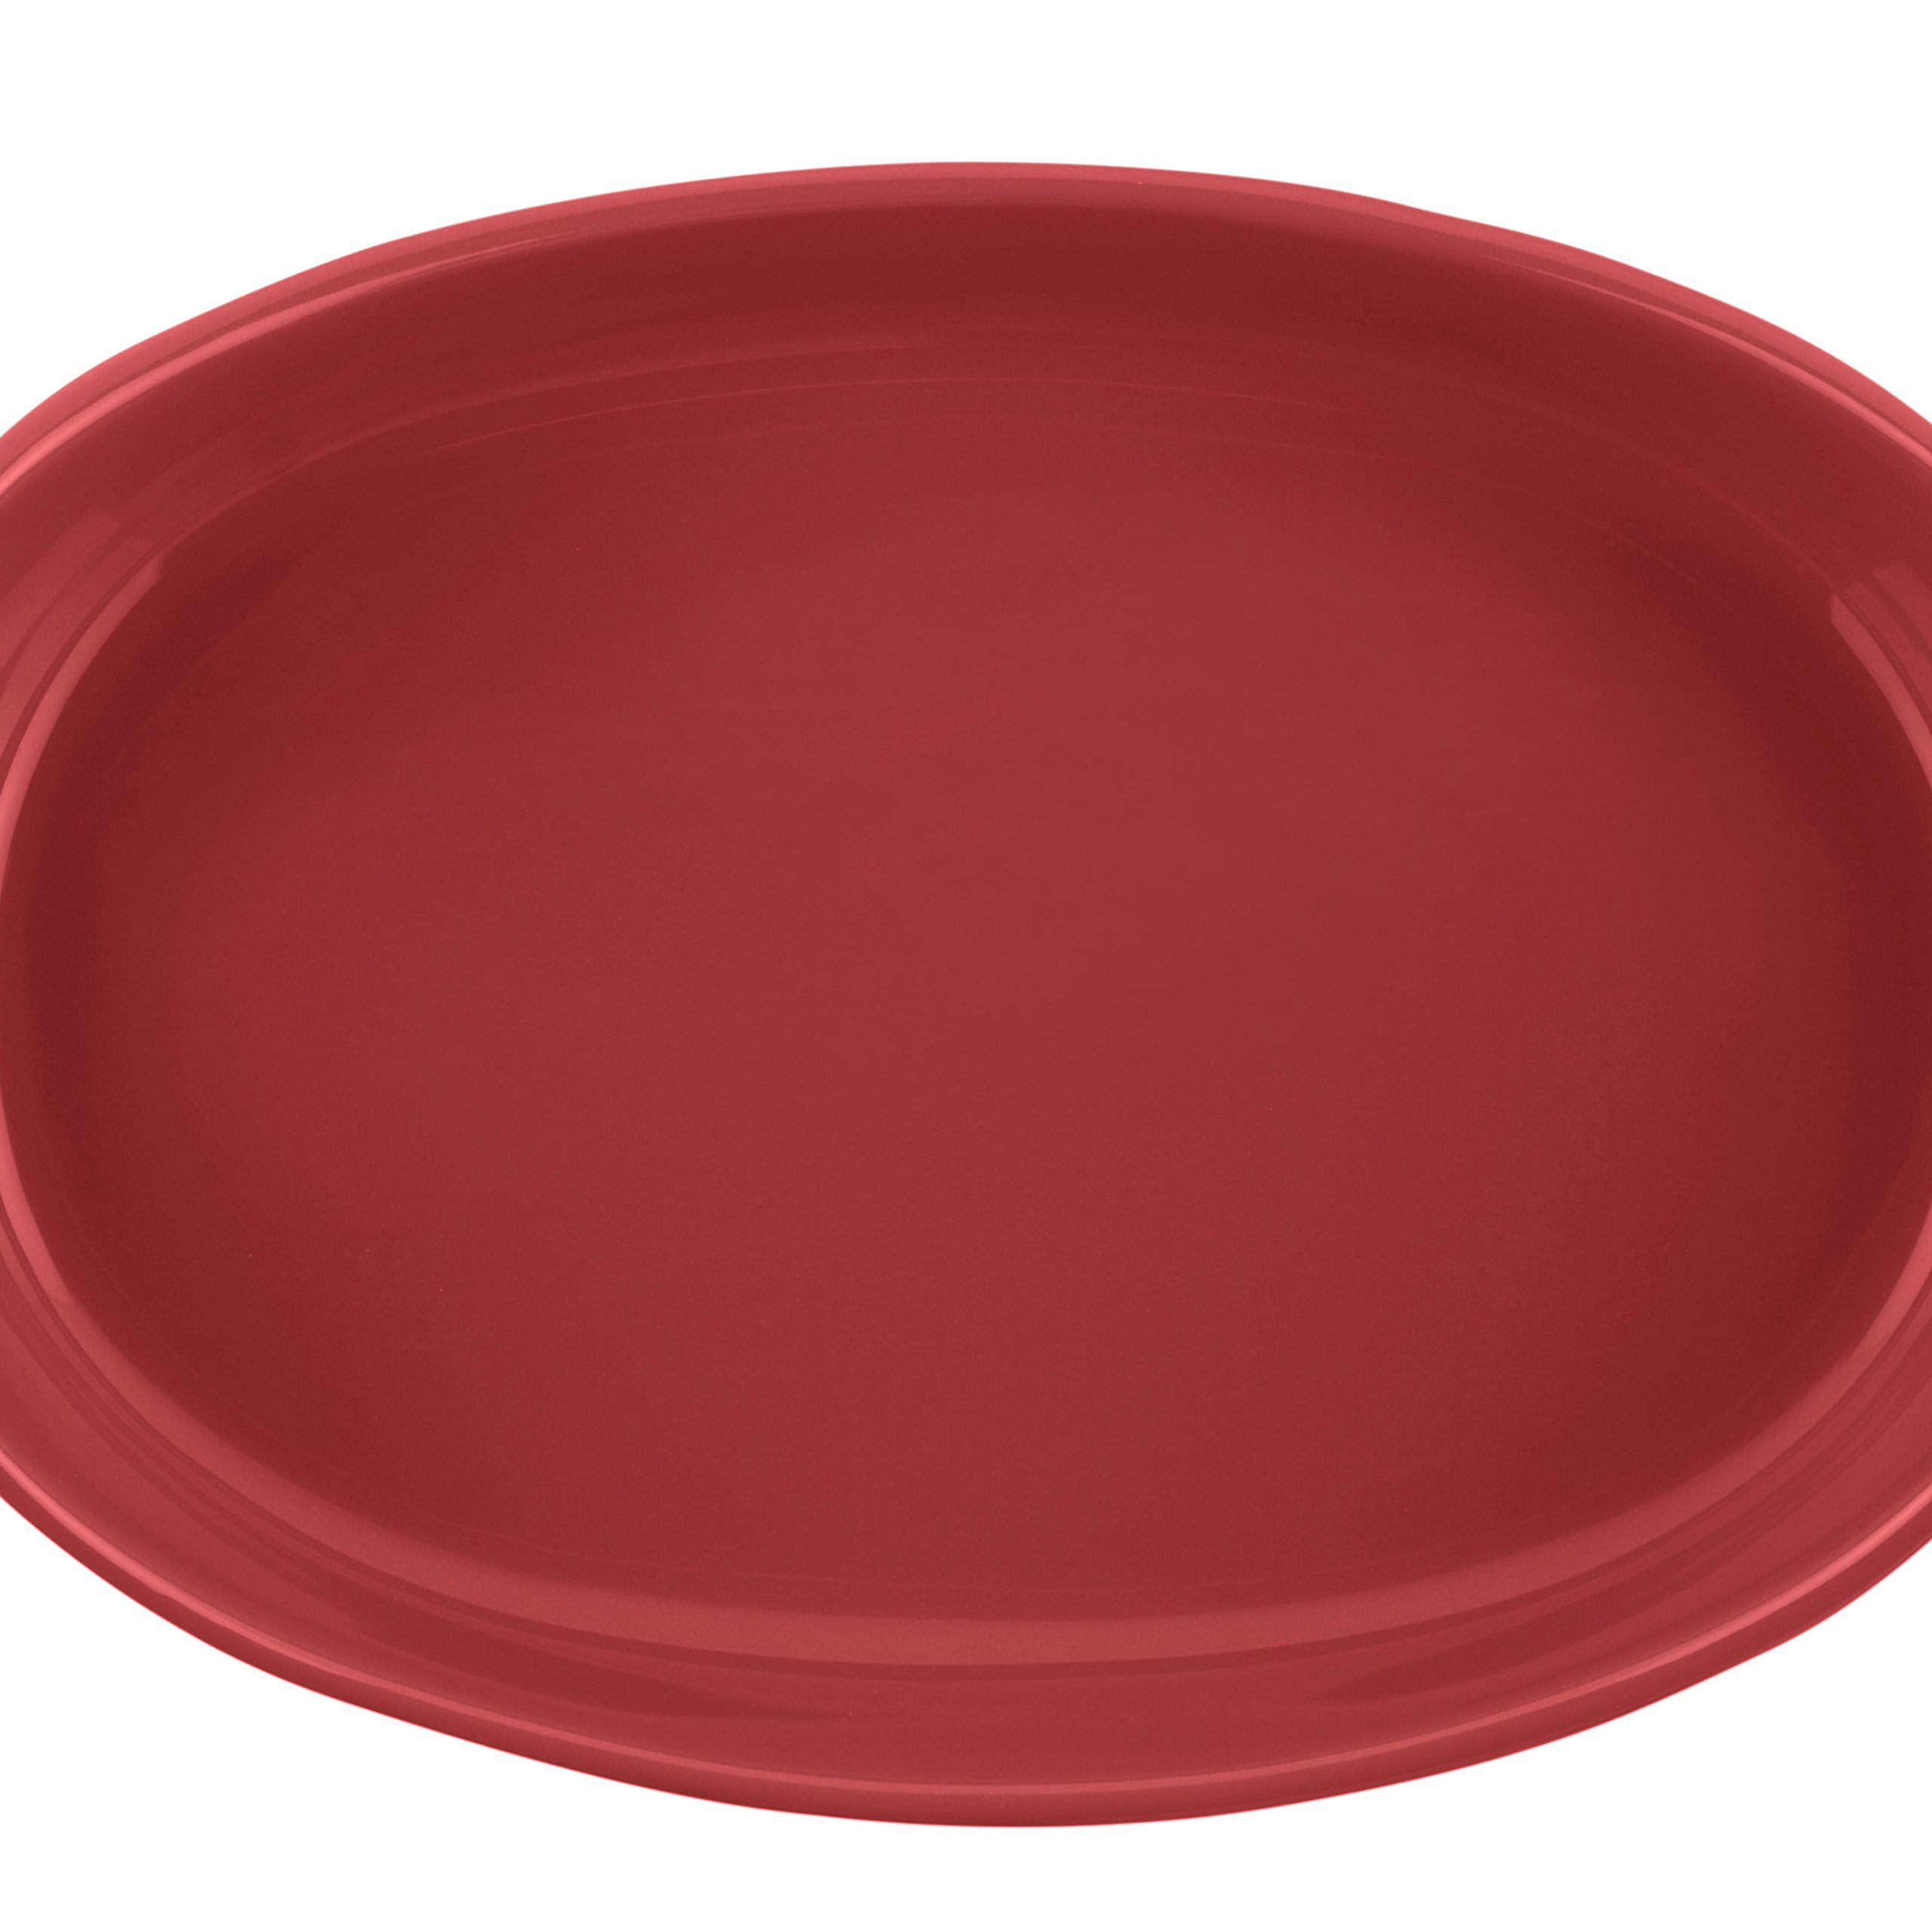 Rachael Ray Stoneware 1-1/4-Quart and 2-1/4-Quart Oval Bubble & Brown Baker Set, Red by Rachael Ray (Image #5)